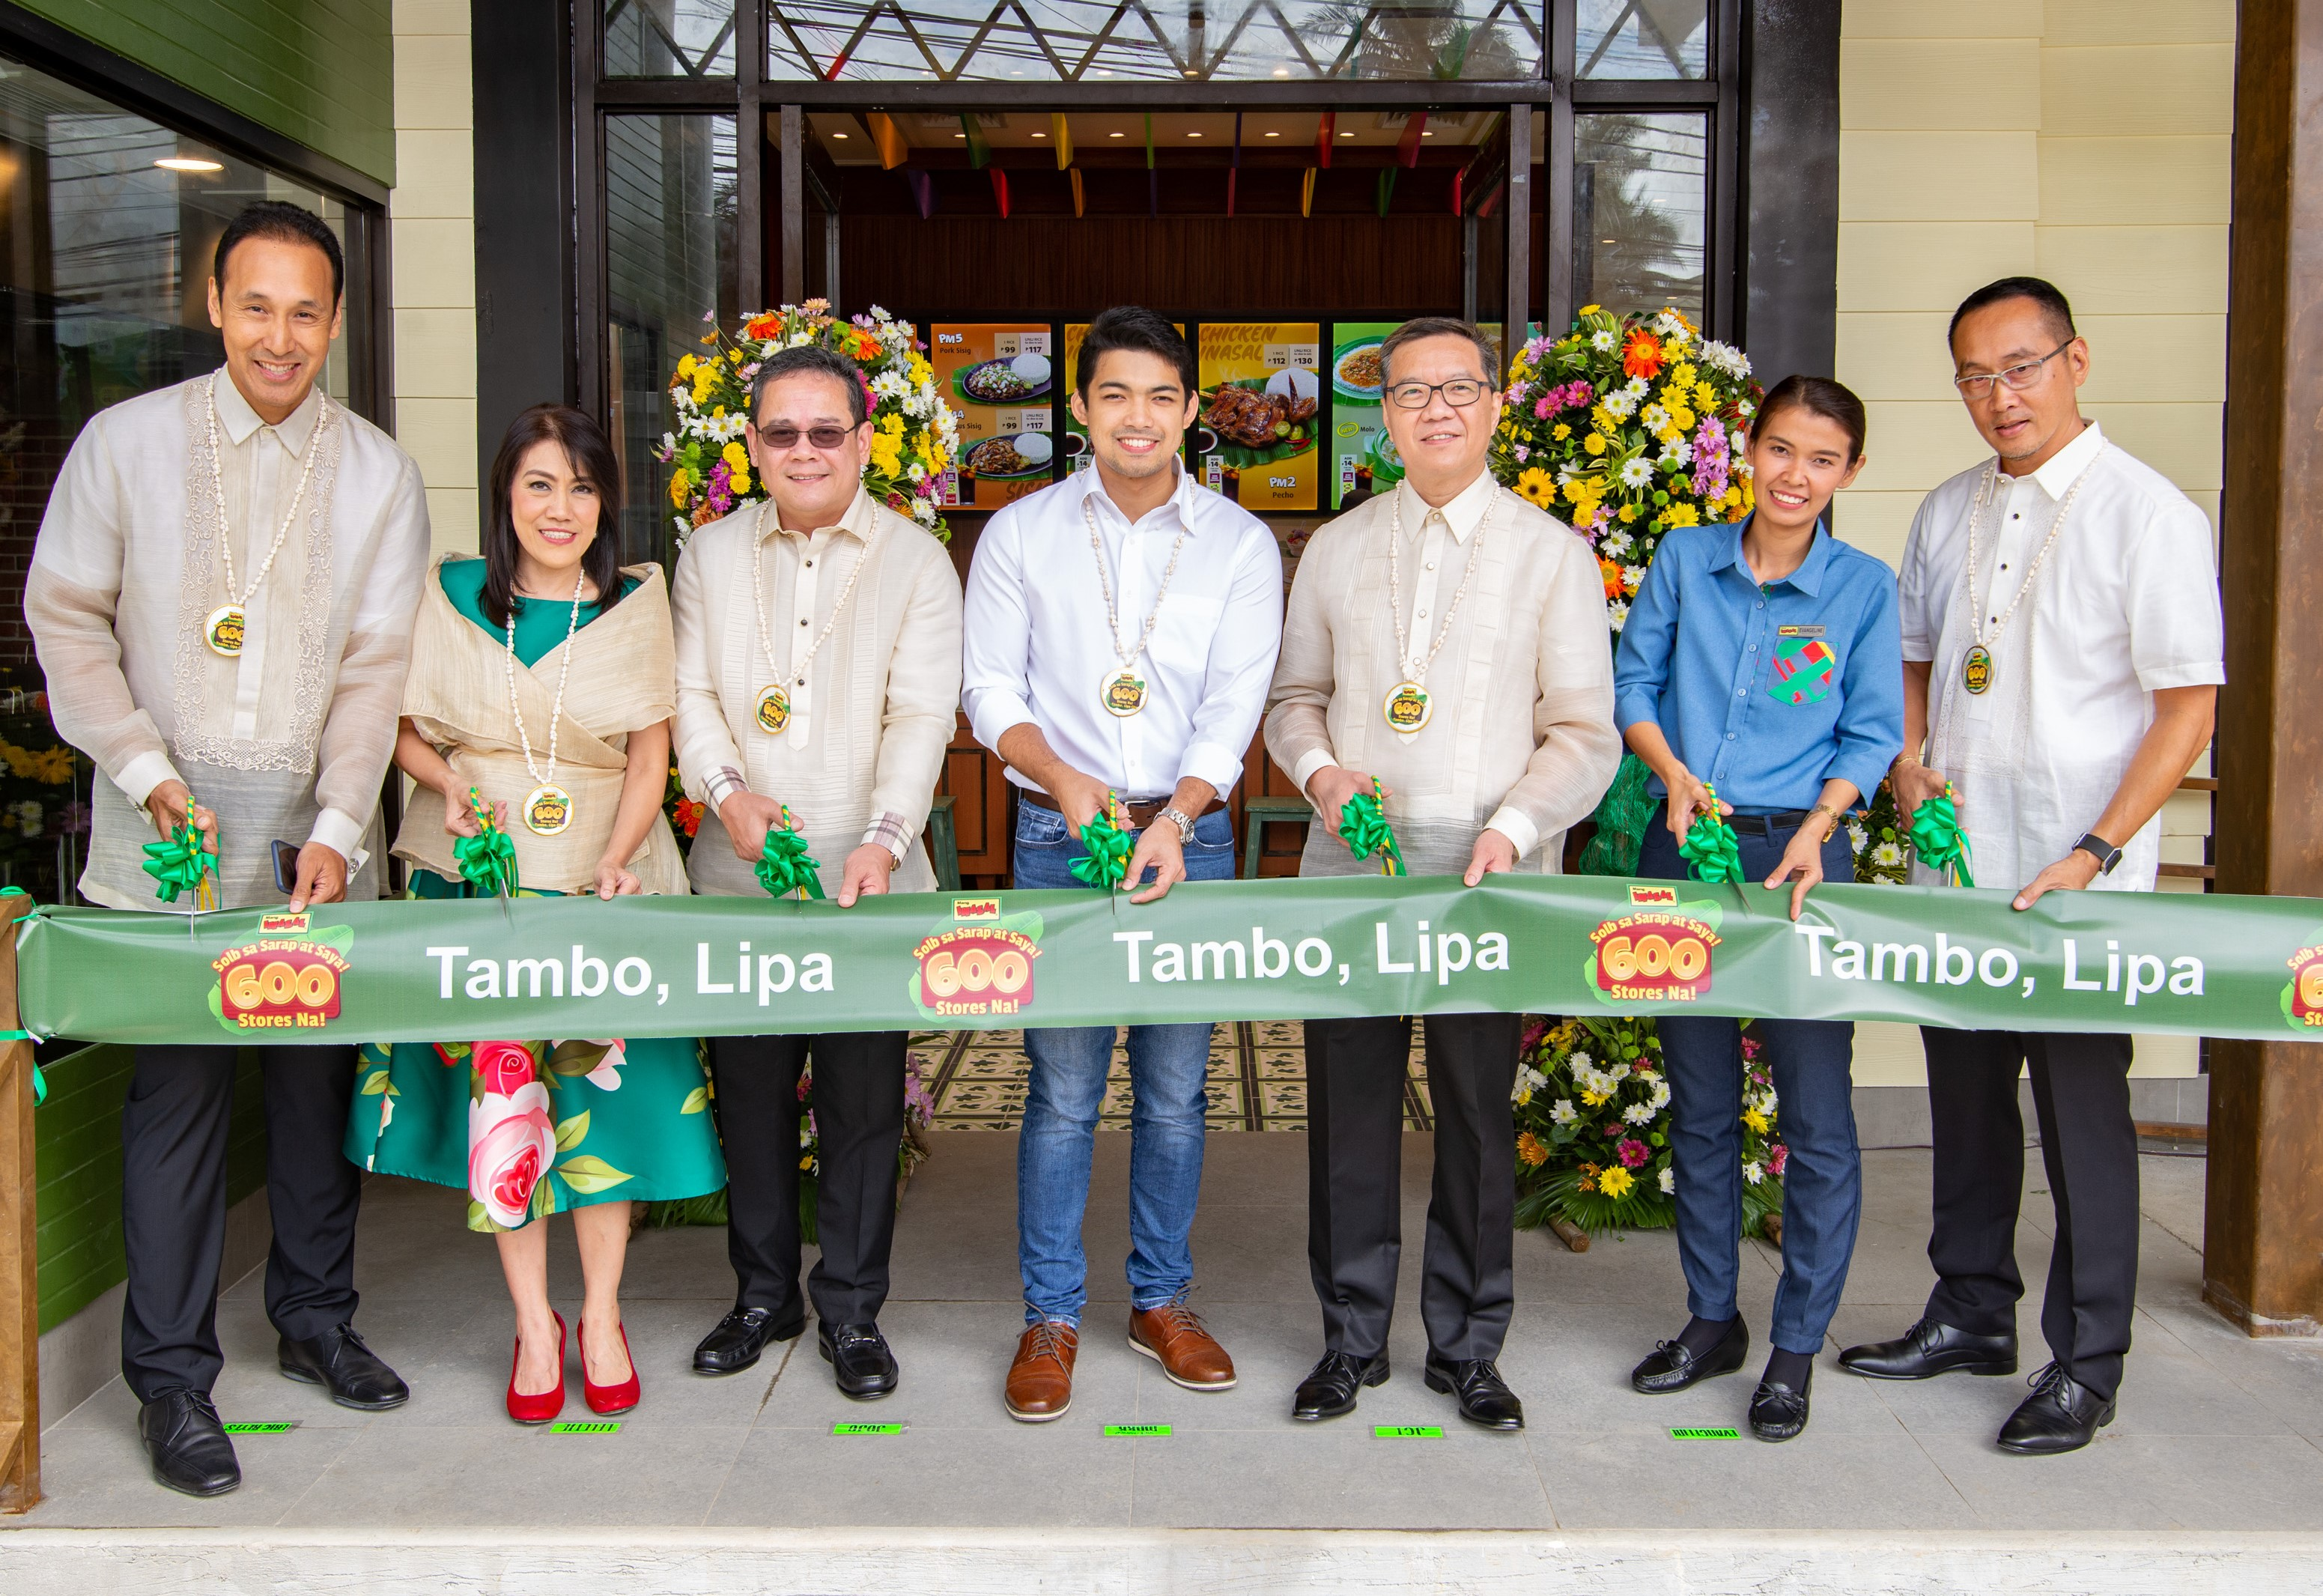 Lipa City Vice Mayor Mark Aries Luancing (center) leads the ribbon-cutting ceremony of Mang Inasalu2019s (MI) 600th store in Tambo, Lipa, Batangas. He is accompanied by JFC Country Business Group Head for the Philippines Joseph Tanbuntiong (third from right), MI Business Unit Head Jojo Subido (third from left), and (from left) Franchisee Eric Reyes, MI South Luzon RBU Head Lelette Minerales, Restaurant Manager Evangeline Ebora, and Managing Director Eugene Reyes.